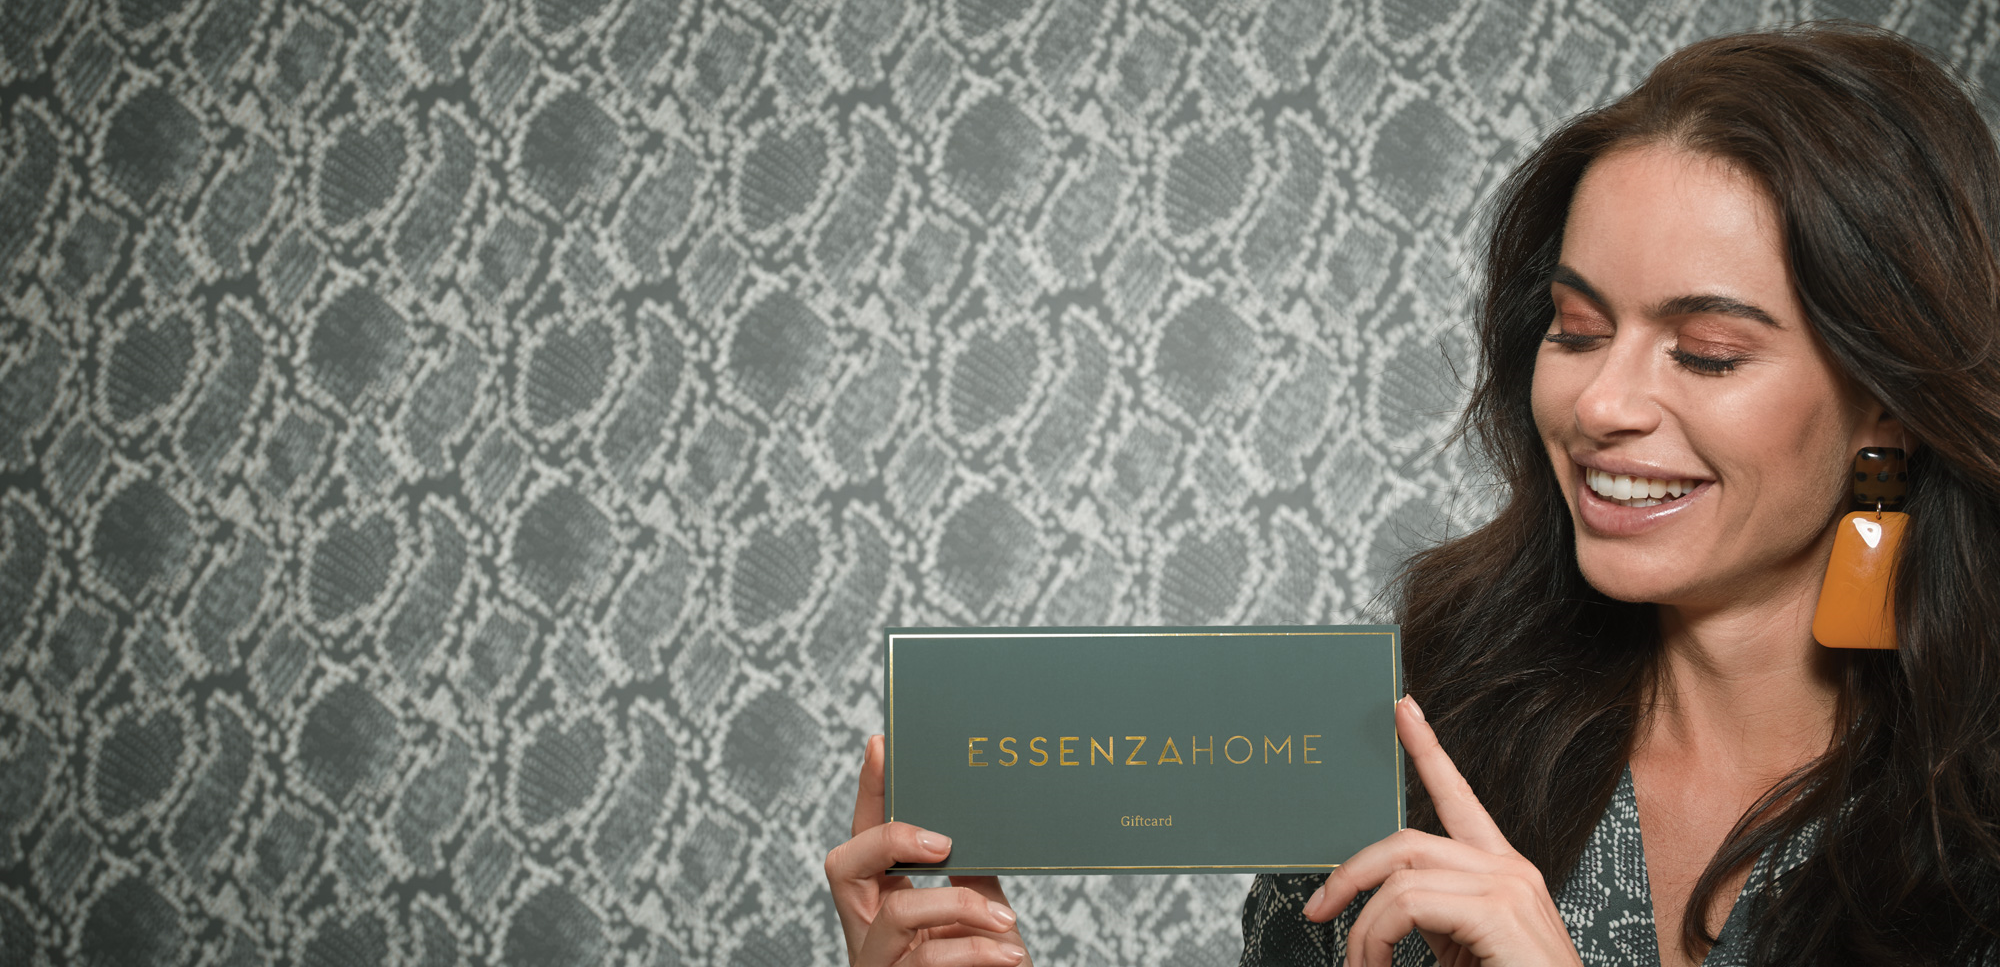 ESSENZA HOME Giftcard